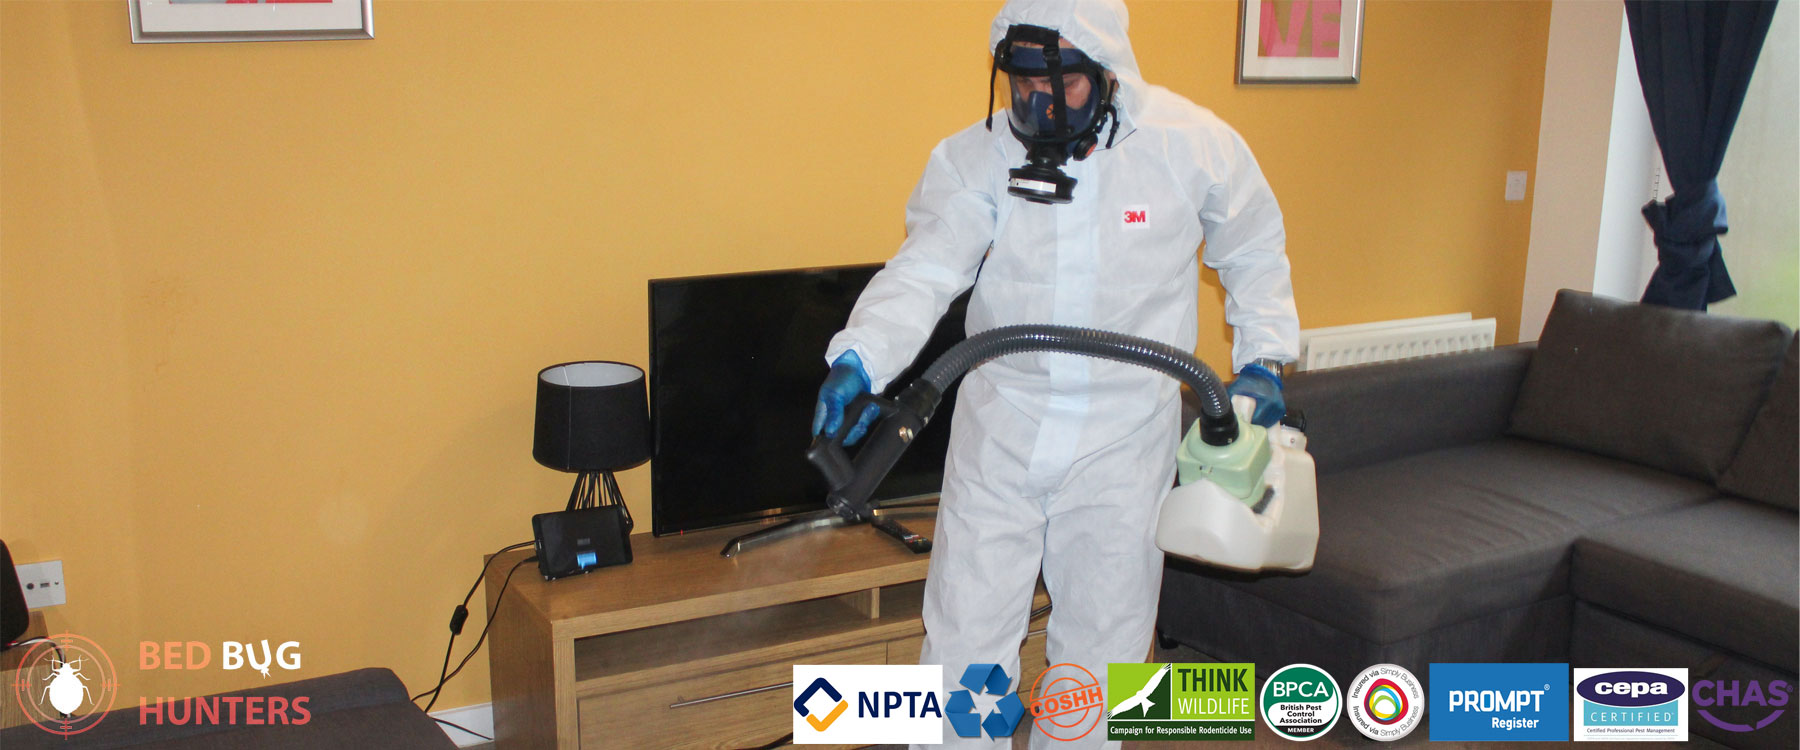 commercial-bed-bug-treatment-accredited1